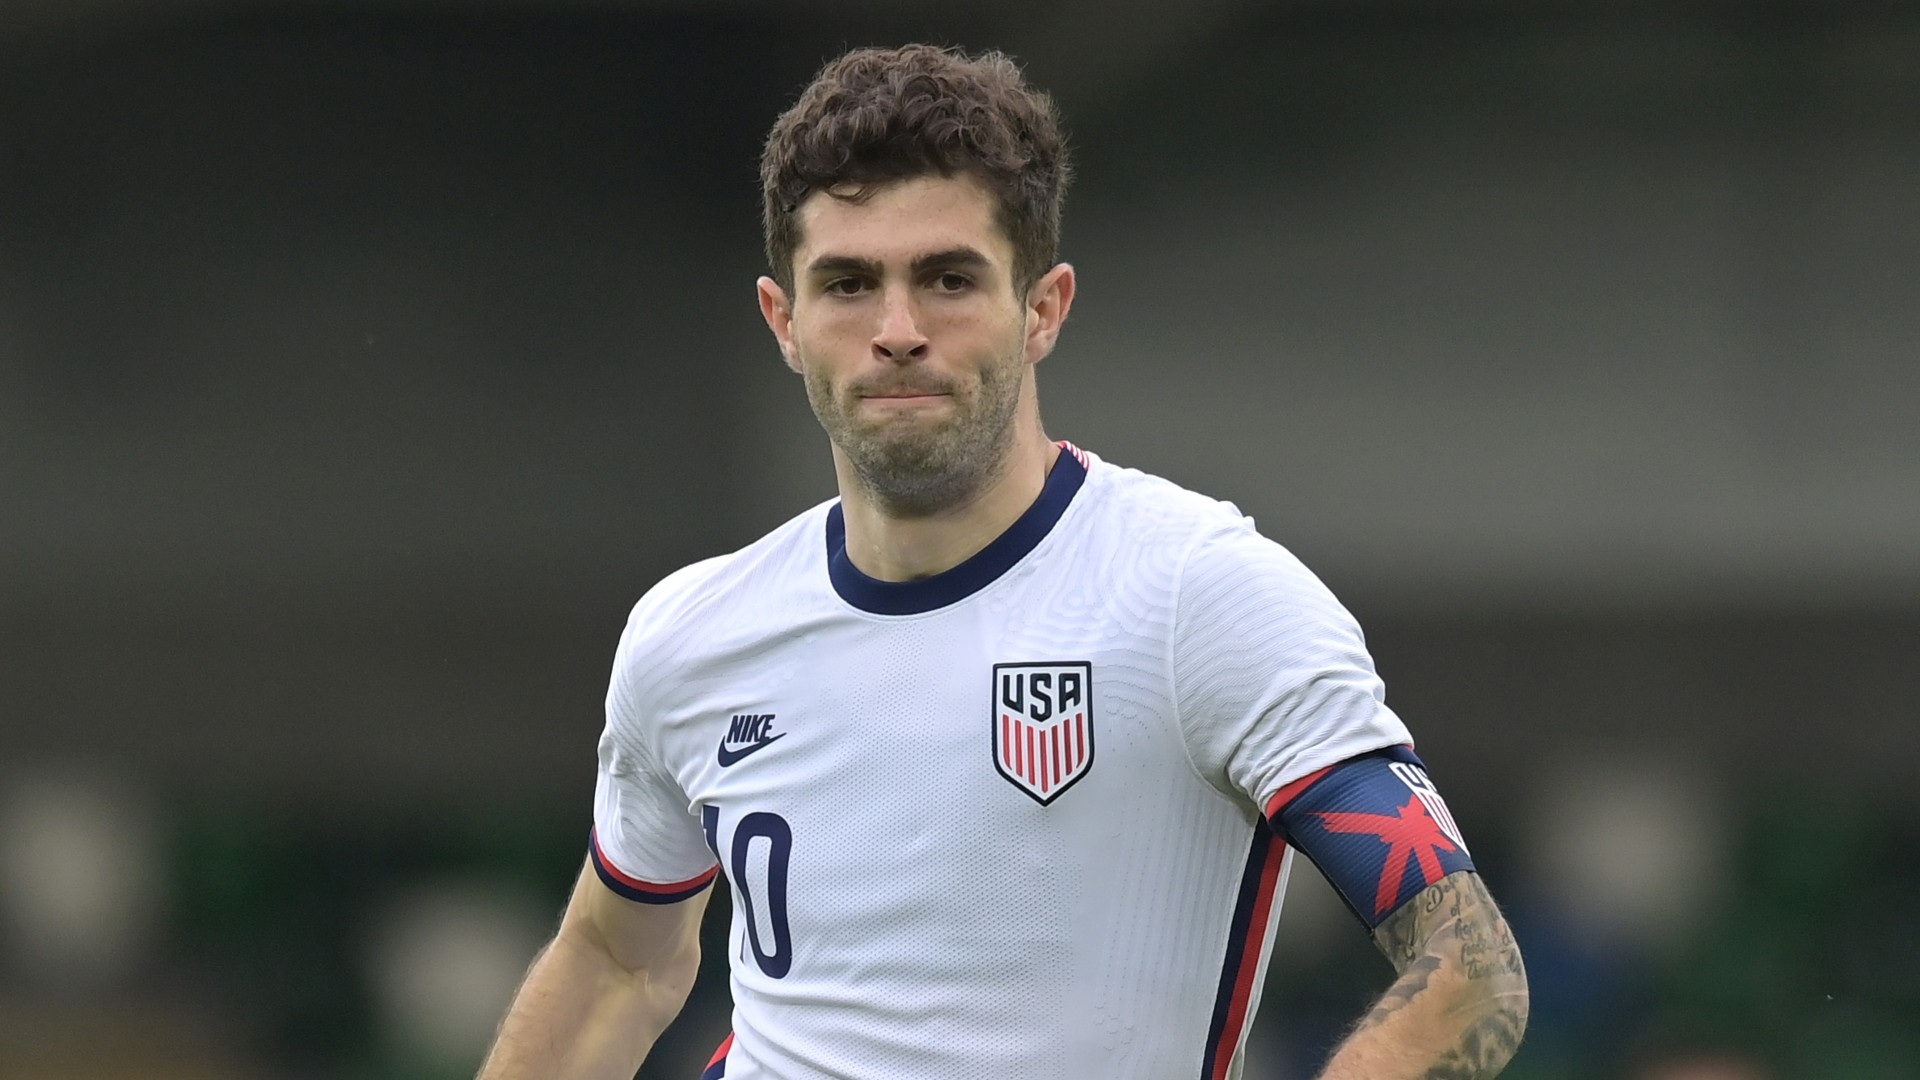 Chelsea and USMNT star Pulisic opens up on mental health struggles